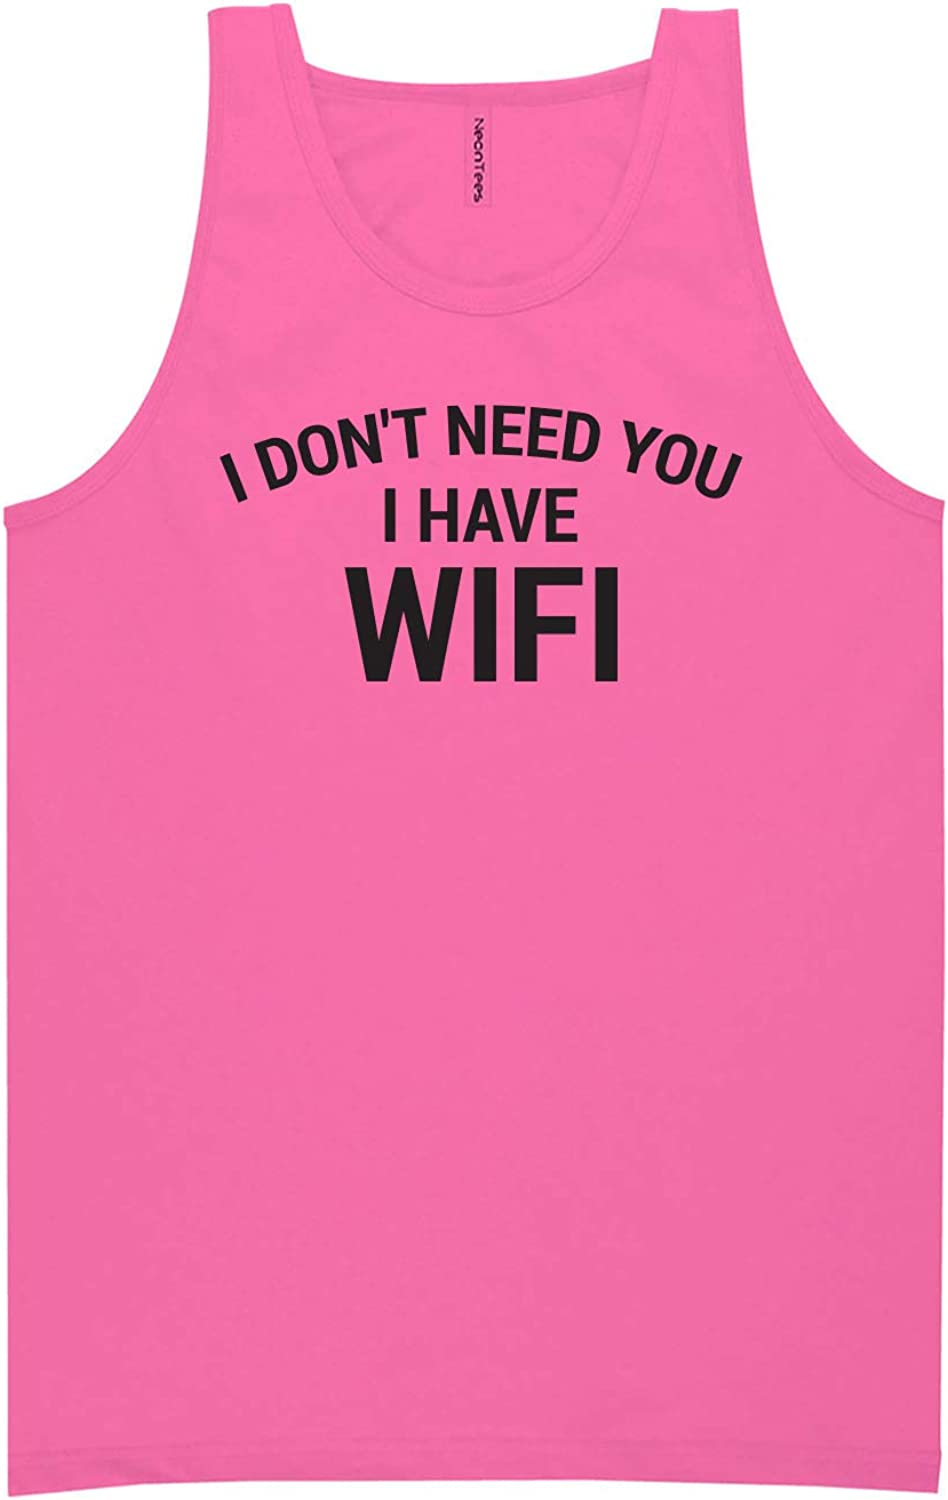 I Don't Need You I Have WiFi Neon Tank Top